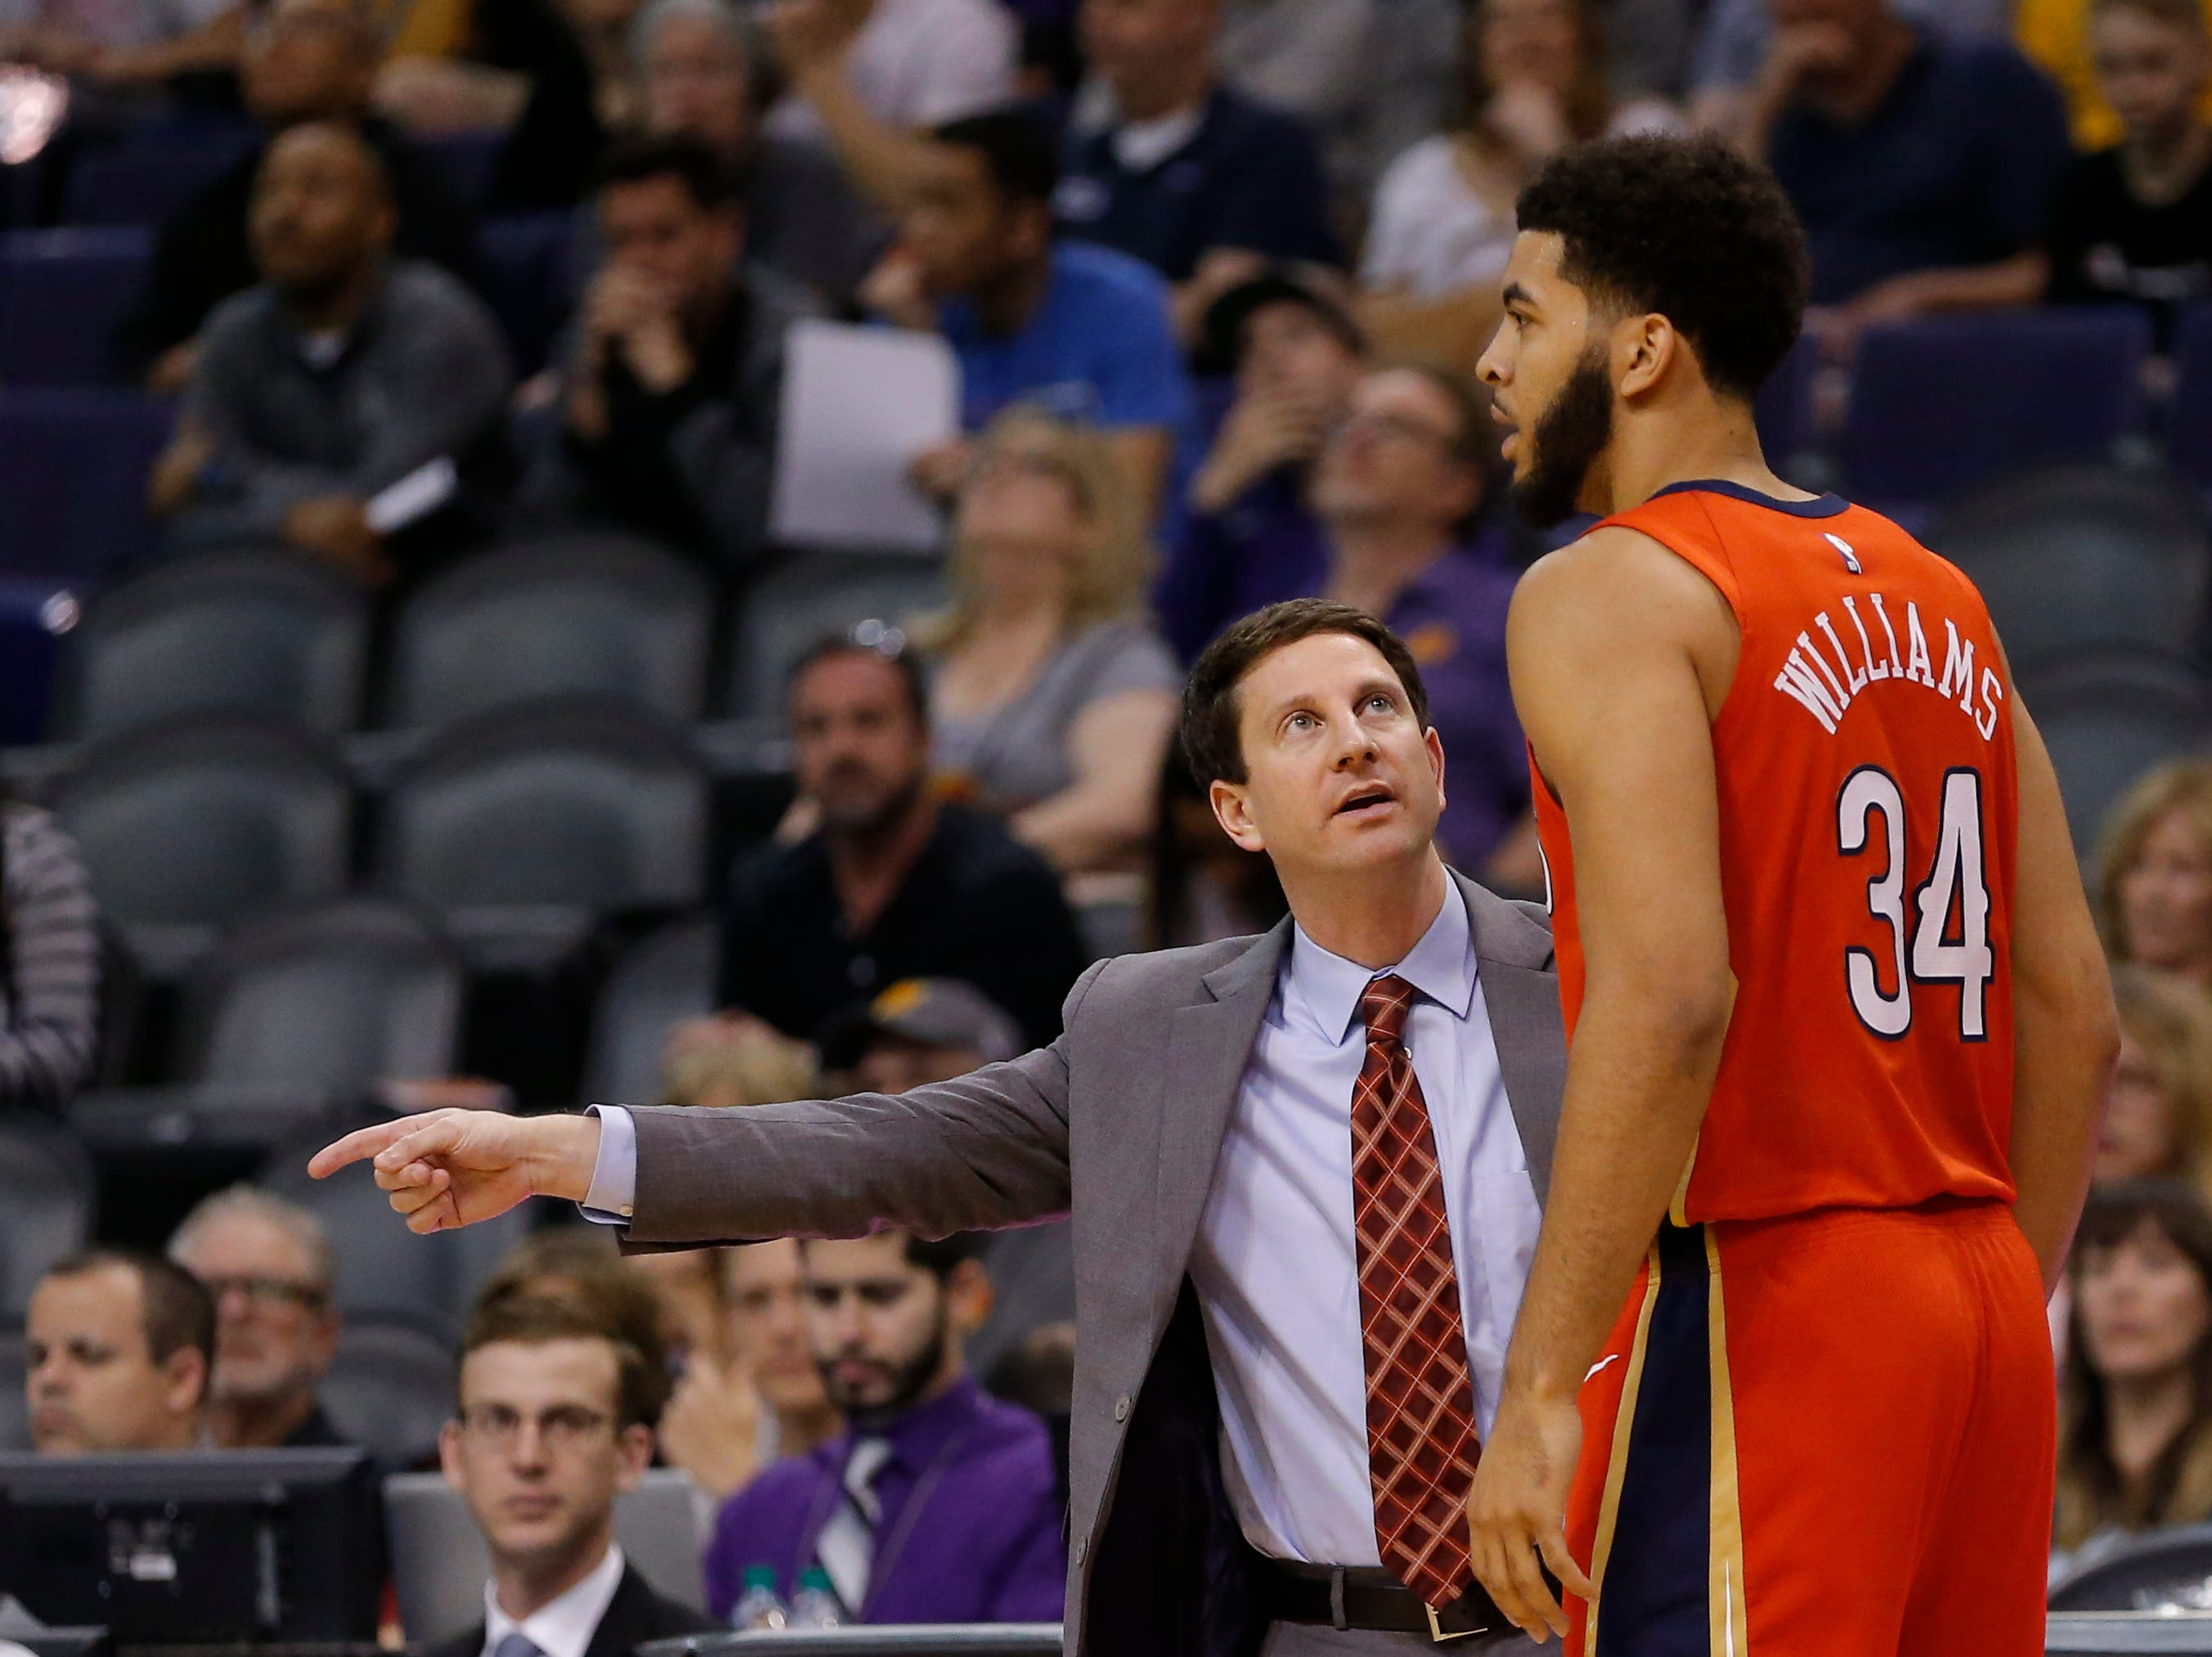 New Orleans Pelicans head coach Alvin Gentry talks with Kenrich Williams (34) in the first half during an NBA basketball game against the Phoenix Suns, Friday, April 5, 2019, in Phoenix. (AP Photo/Rick Scuteri)